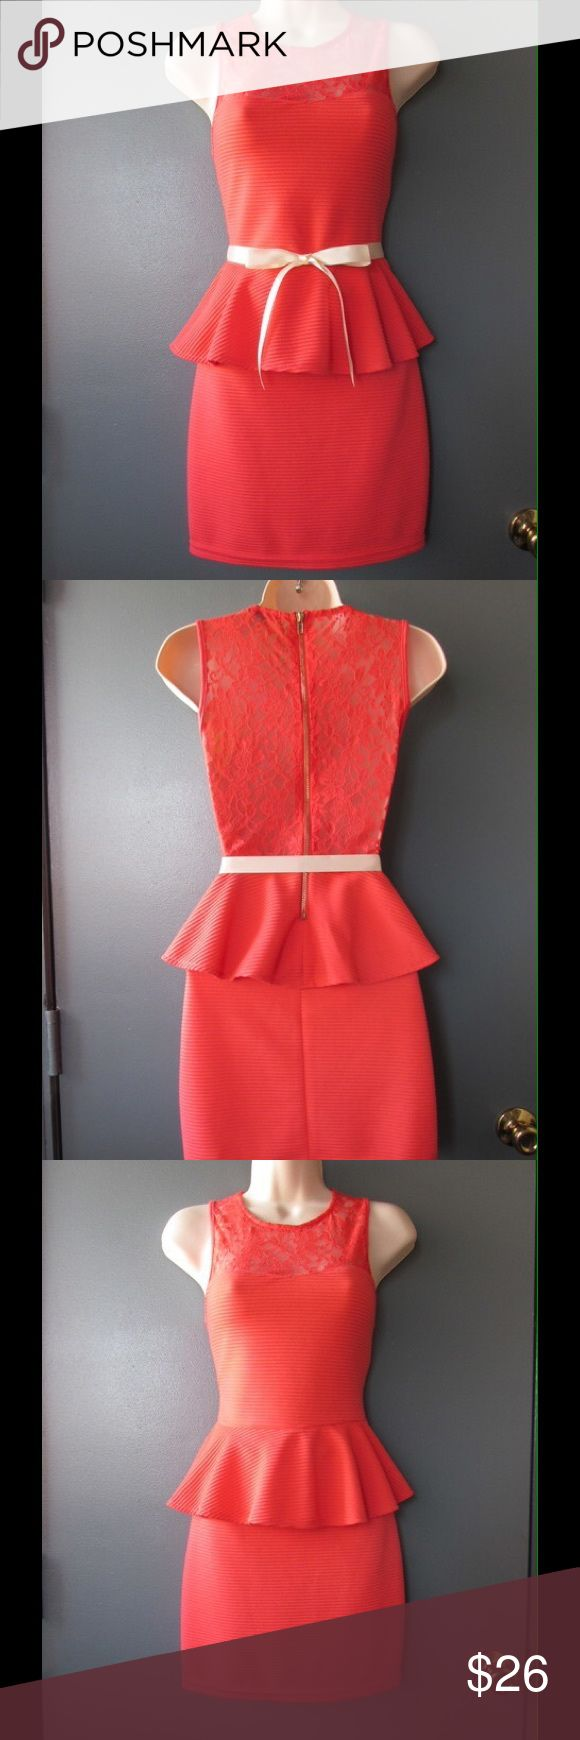 Dark Coral Peplum Dress W/Lace Applications & Belt NWT. This dress is rally soft and comfy. Semi-Stretchy. Zipper on the back. Belt included. Size medium. Save $$$ on bundles. Charlotte Russe Dresses Mini